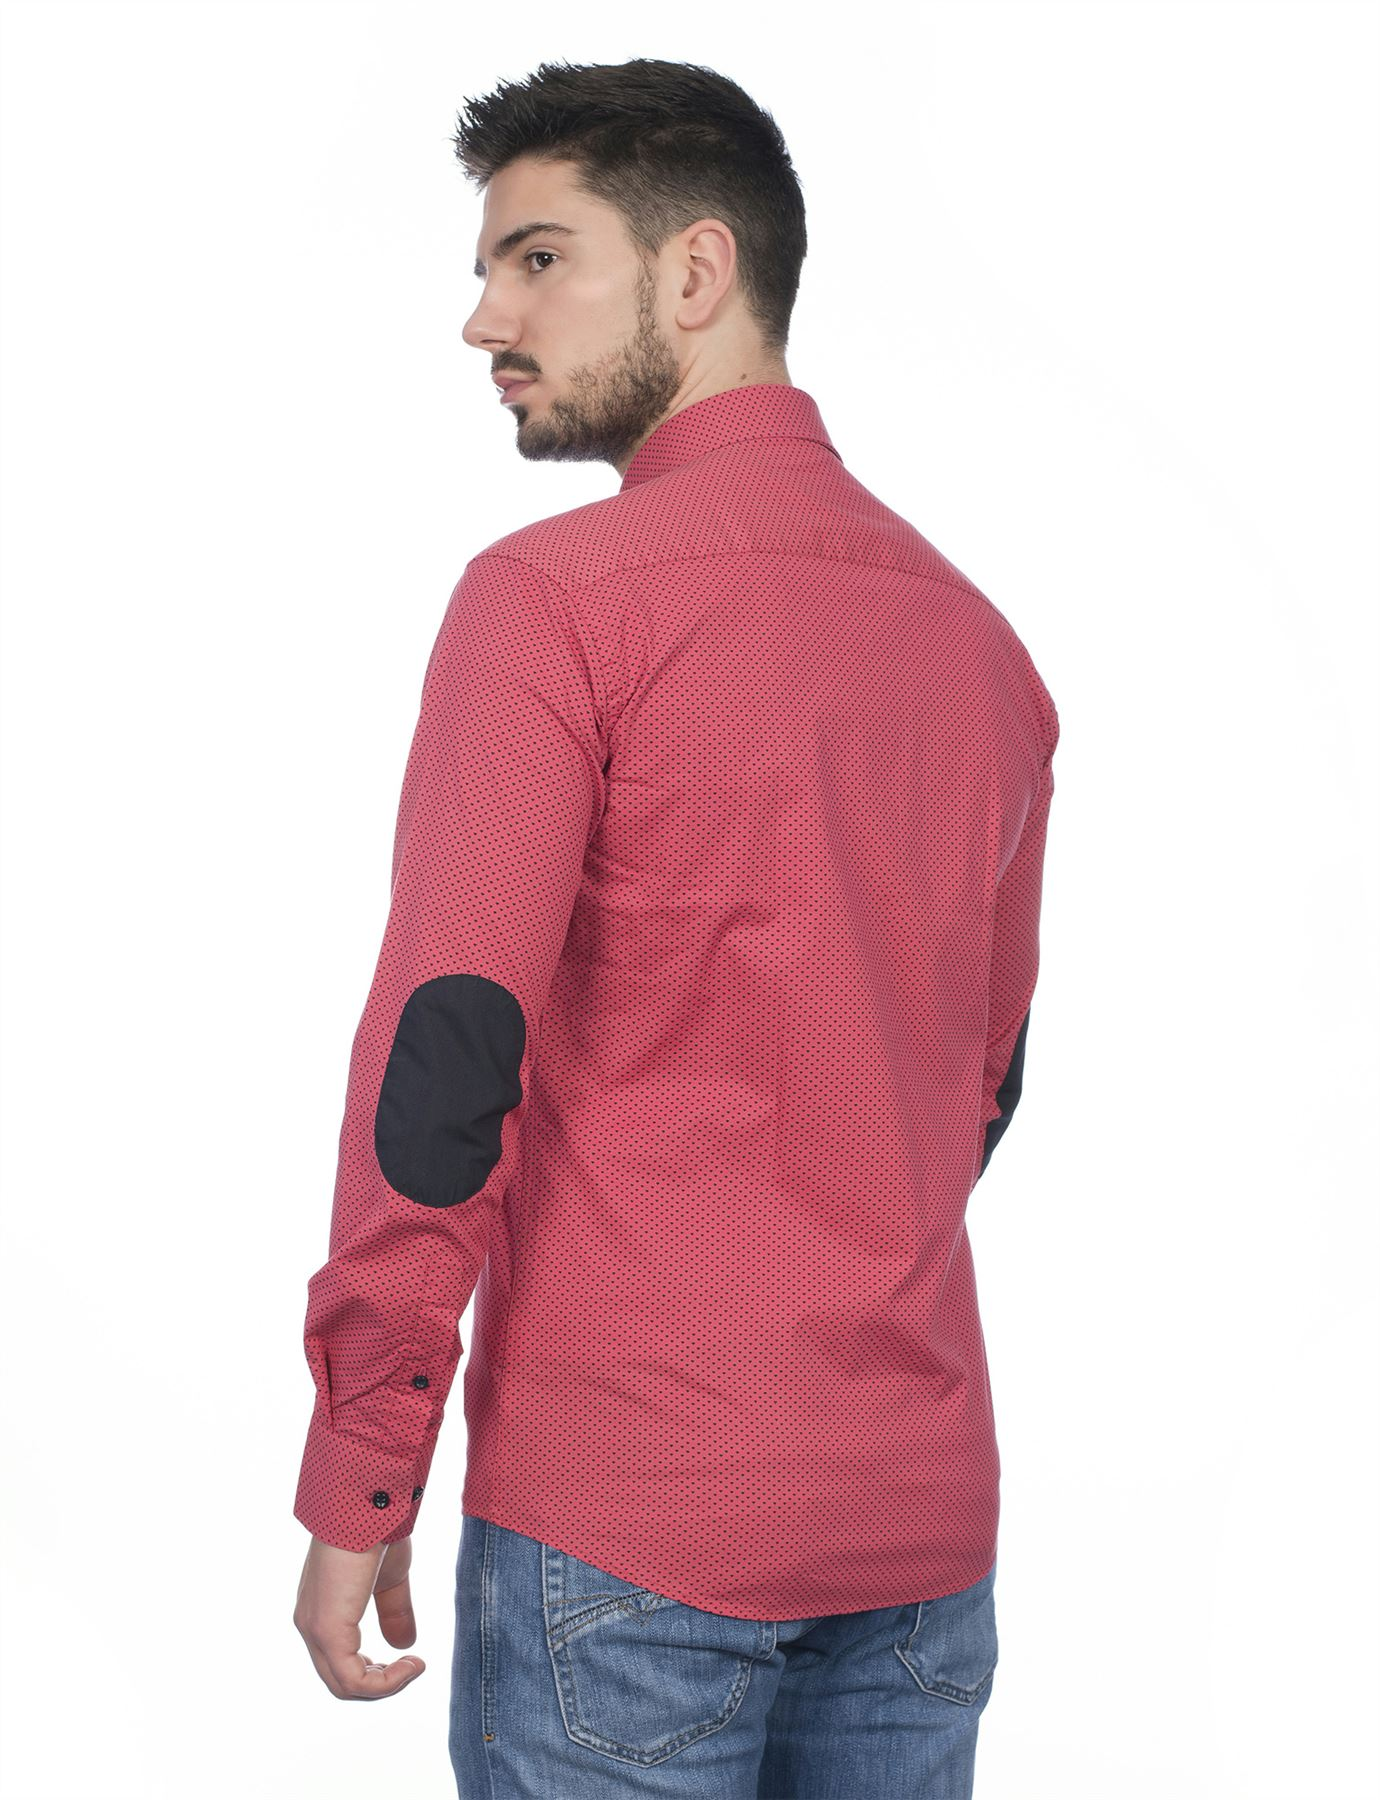 Shirts With Elbow Patches Womens